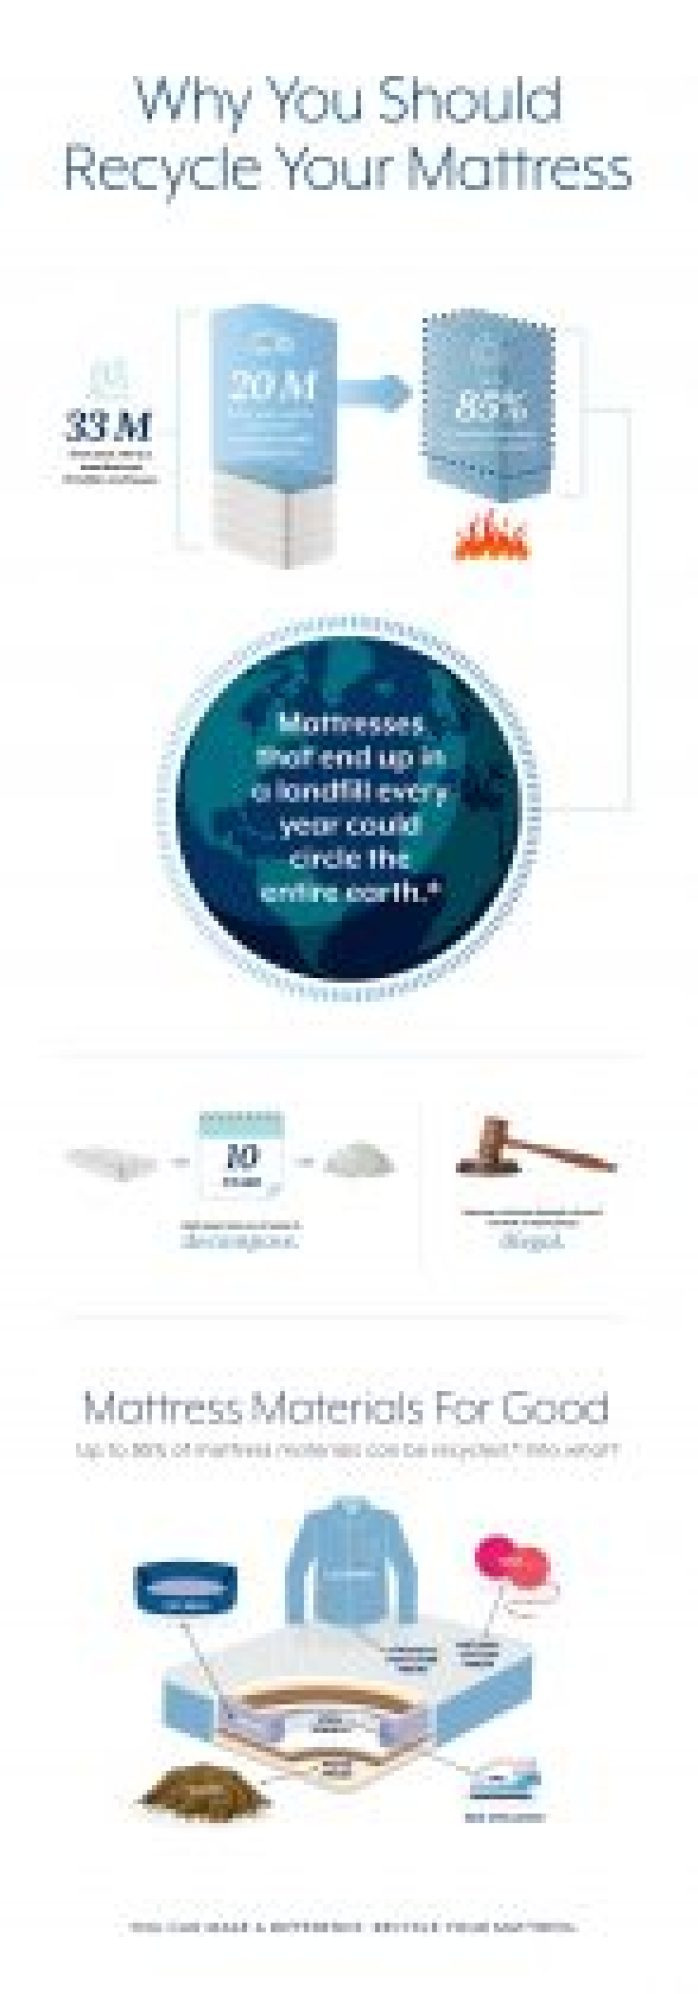 Here's a great piece on how to get rid of yourunwanted mattresswithout getting fined (or destroying the Earth). Did you know: •every year the U.S. Manufactures 33M mattresses, and every year 20M end up in a landfill or incinerator? •mattresses take 10 years to decompose? •up to 85% of materials in a mattress can be recycled into things like pet beds, mulch, and appliances? Mattress Advisorcreated a guide on exactly what to do with your unwanted mattress, whether it'srecyclingordonating to a charitable organization- there's so many options.